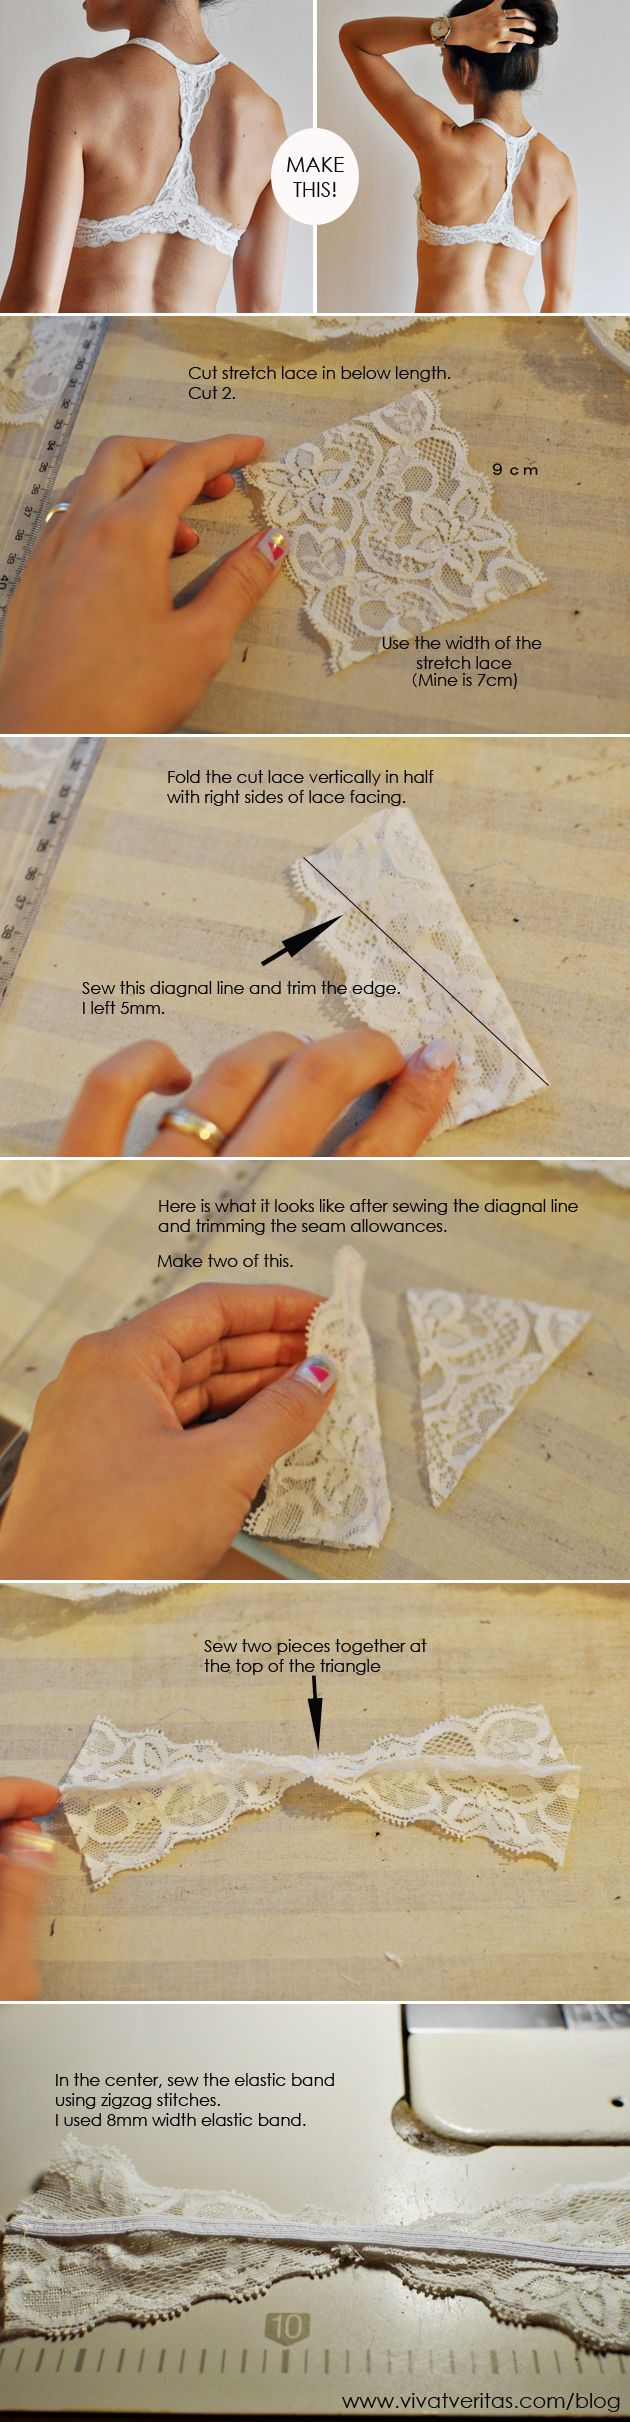 Racer Back Bra Sewing Tutorial (via vivatveritas